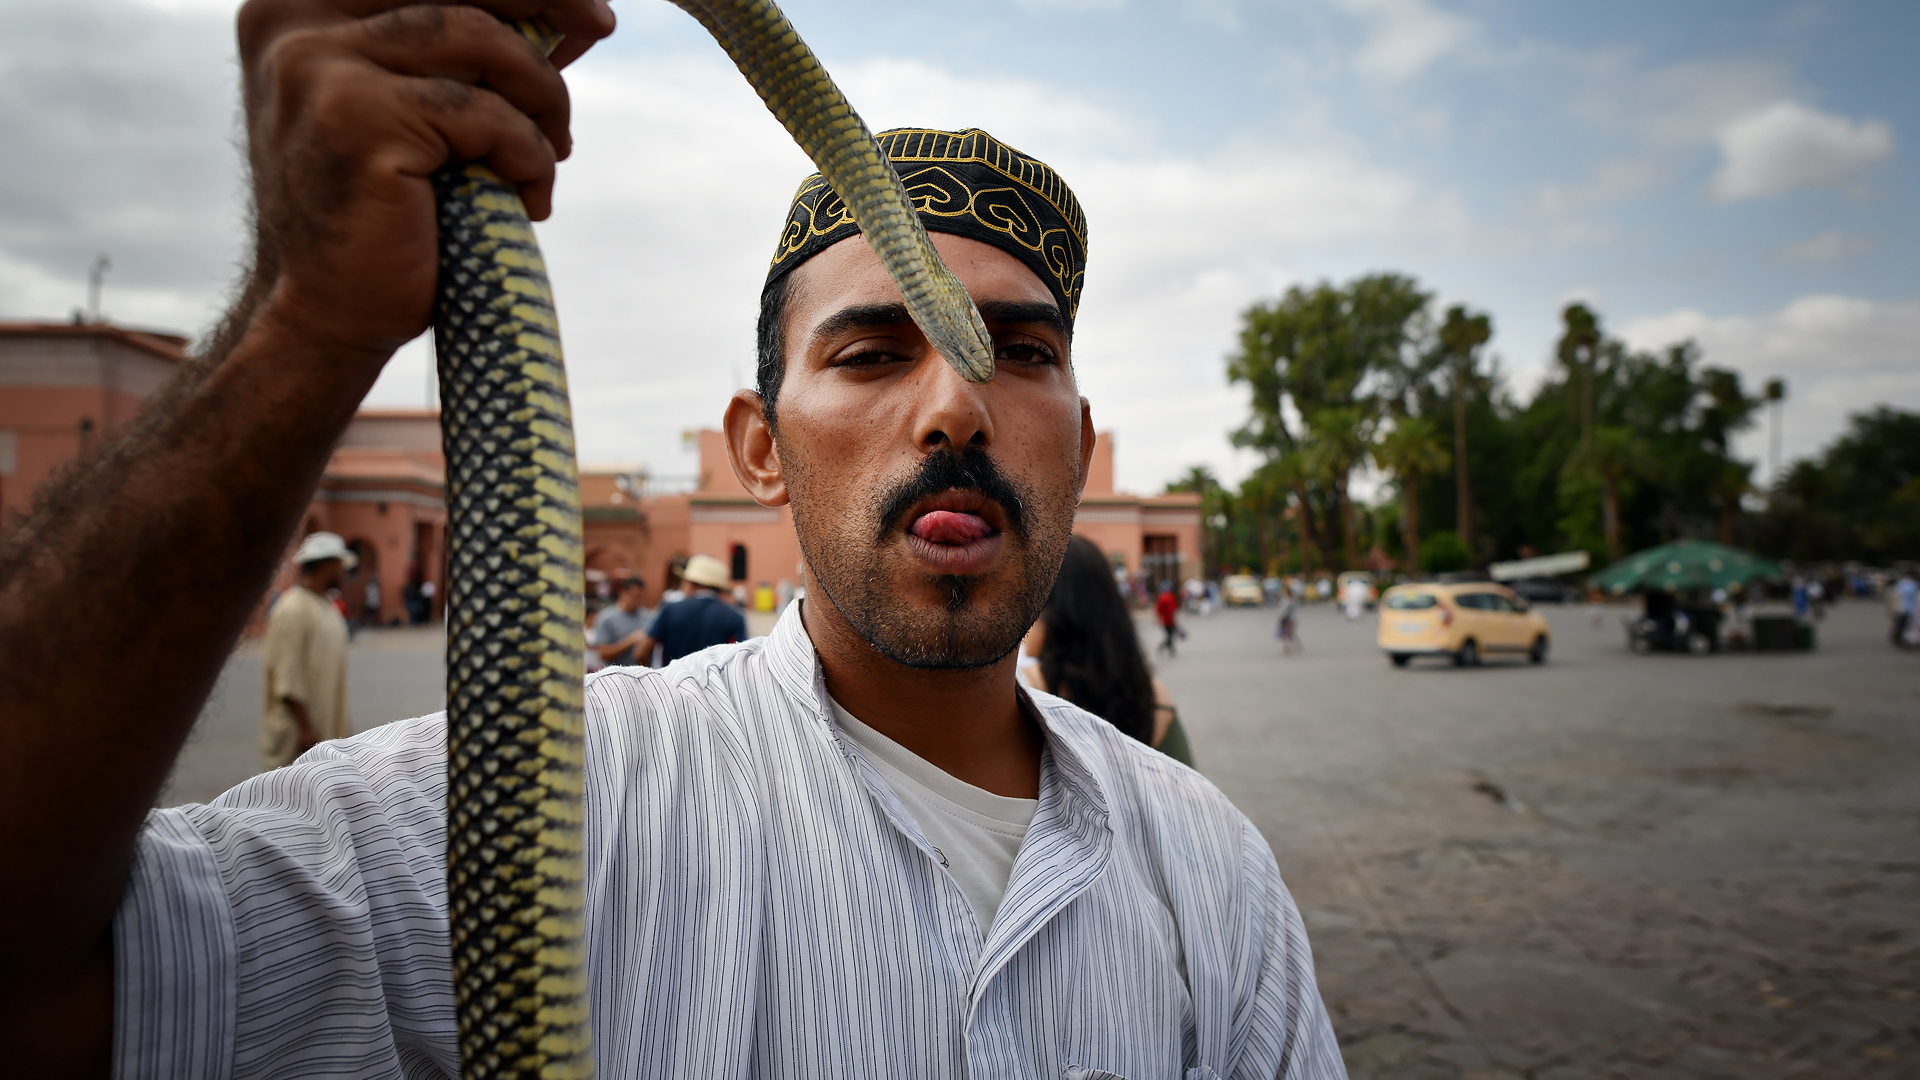 Snake charmer of Marrakech